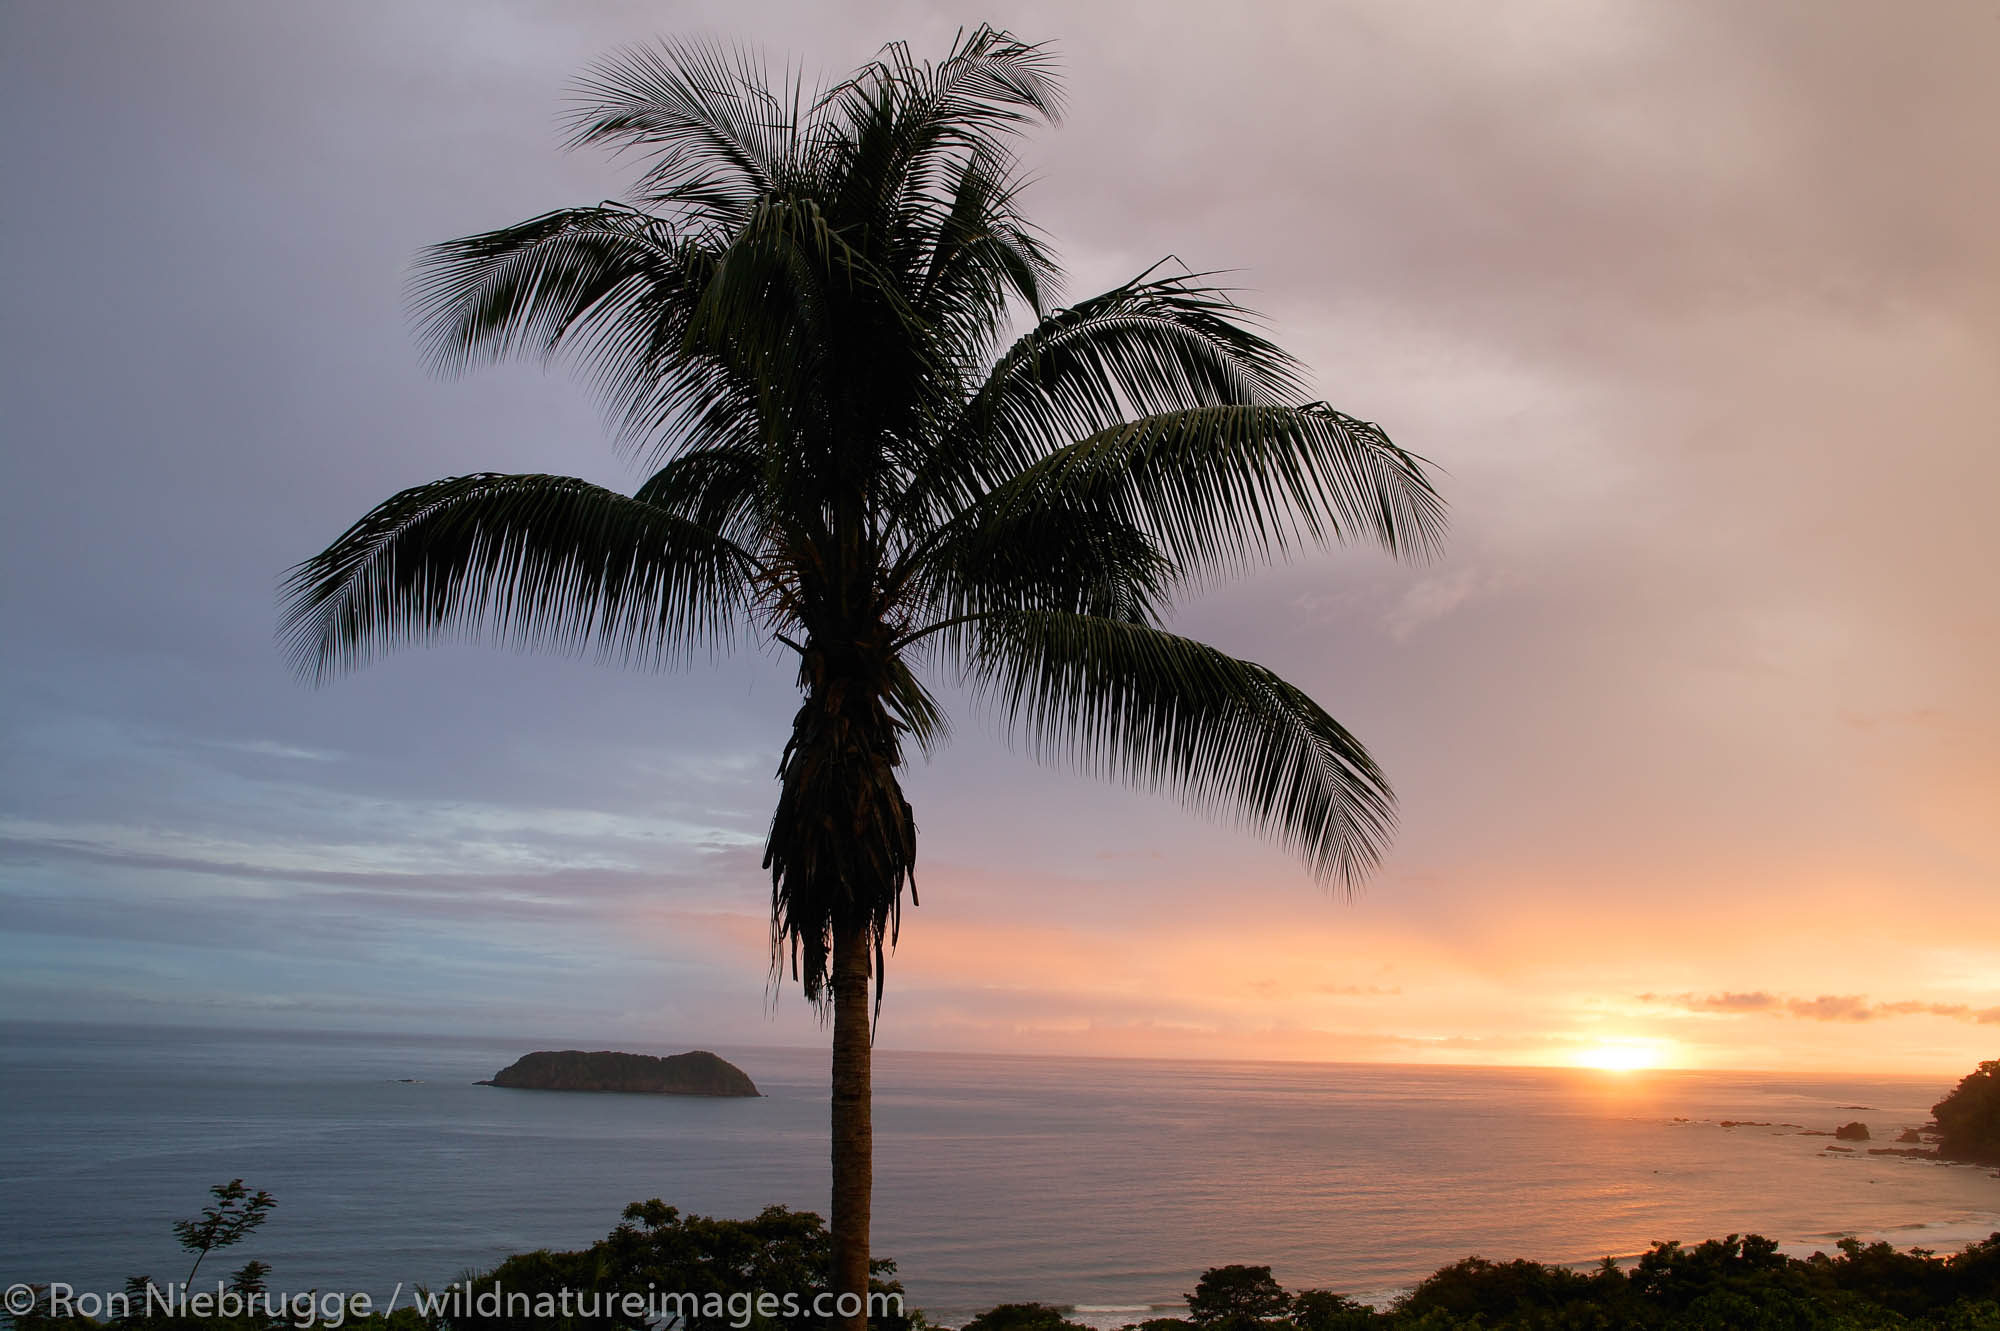 A Palm Tree at sunset, Manuel Antonio, Costa Rica.